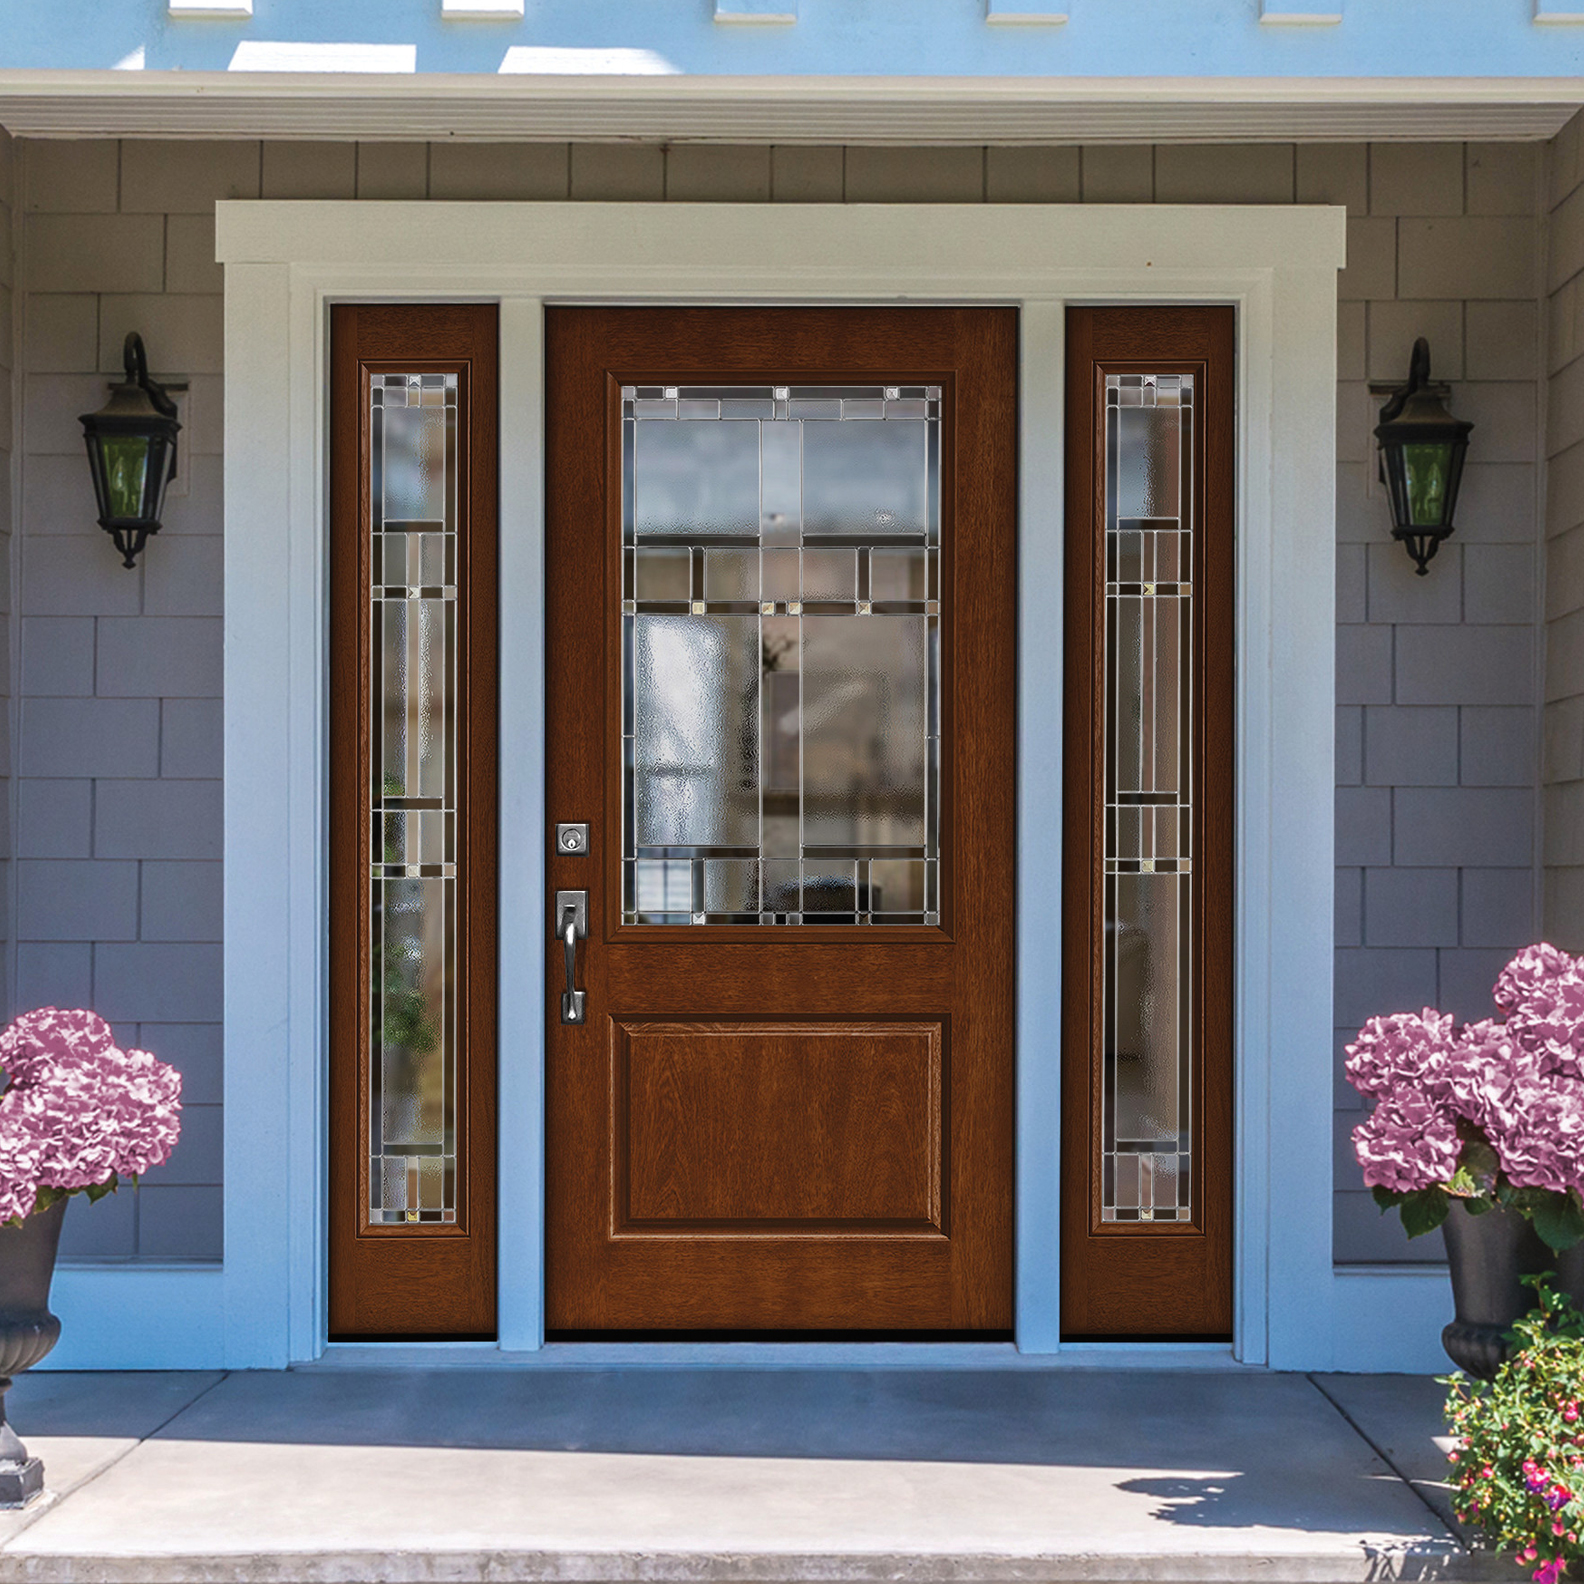 CLASSIC-CRAFT RUSTIC ENTRY DOOR SYSTEMS